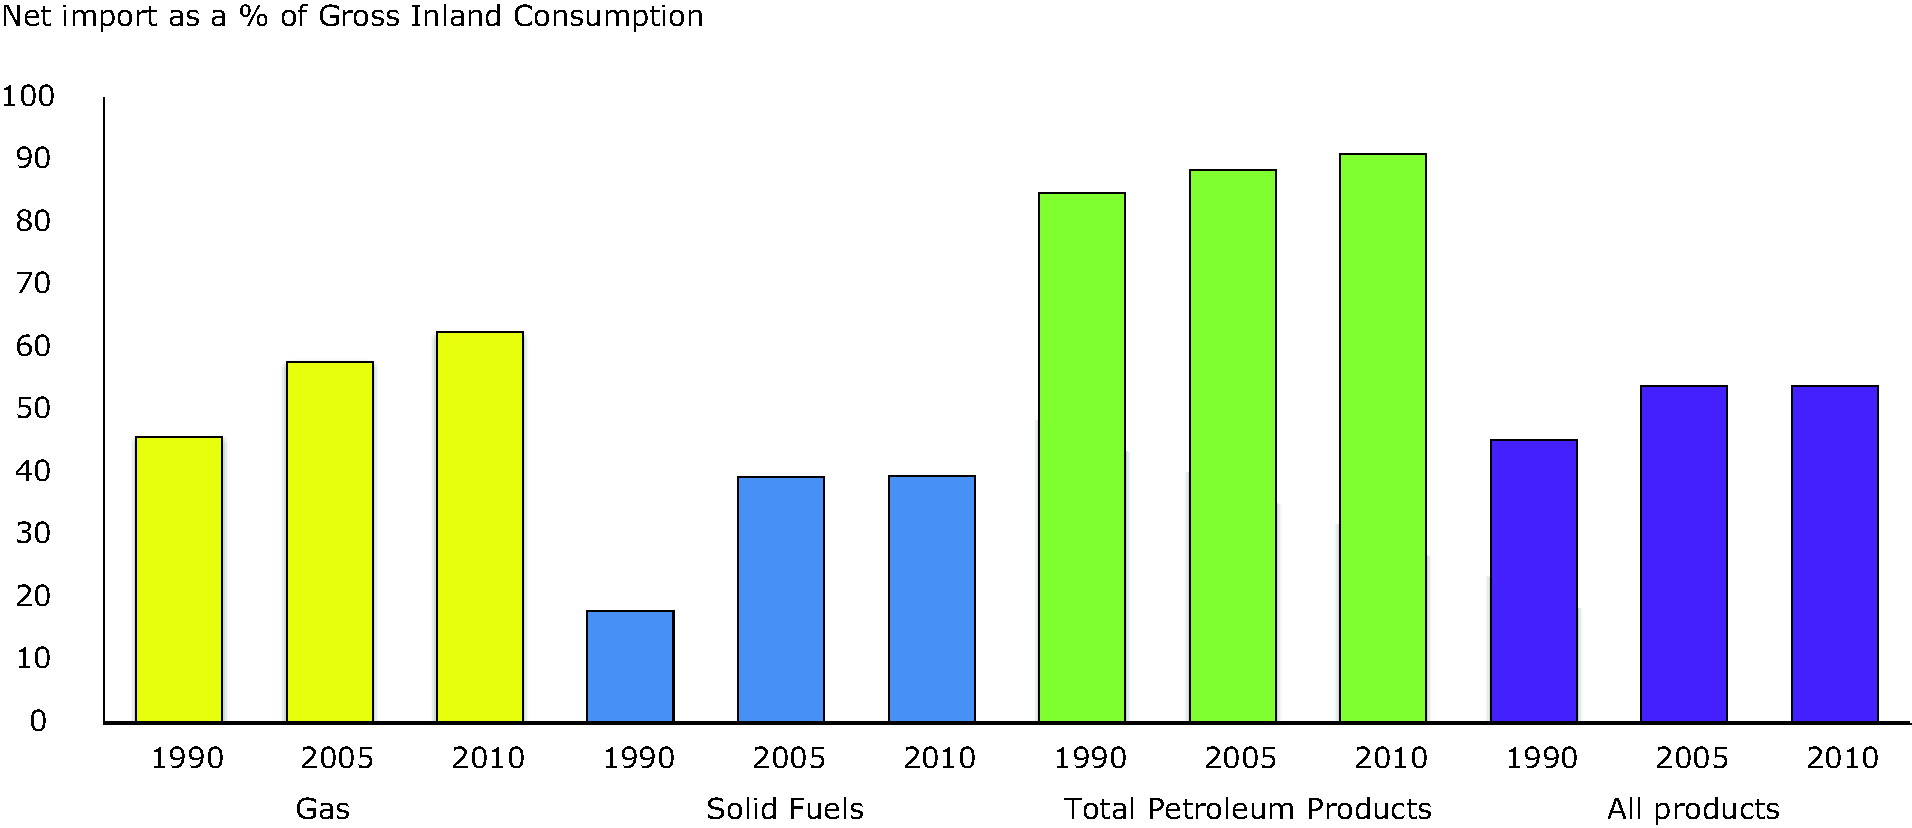 EU27 net imports of gas, oil, solid fuels and the sum of these, as a % of fuel-specific gross inland energy consumption